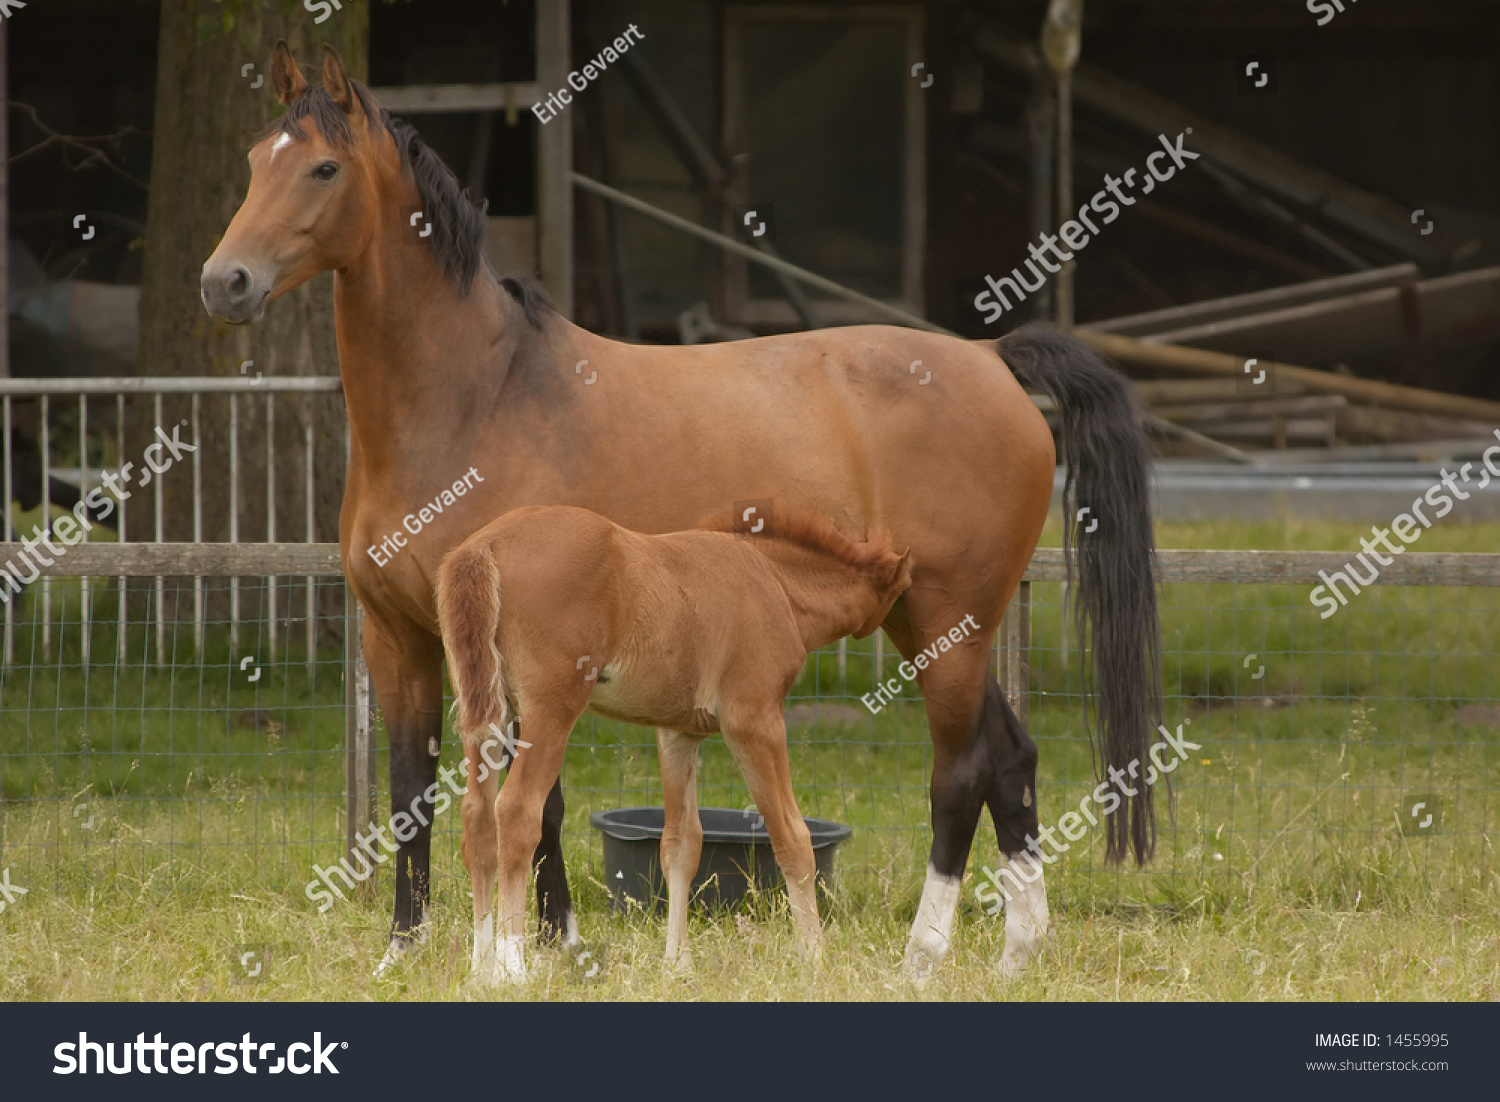 Mother Her Baby Horse Drinking Milk Stock Photo Edit Now 1455995